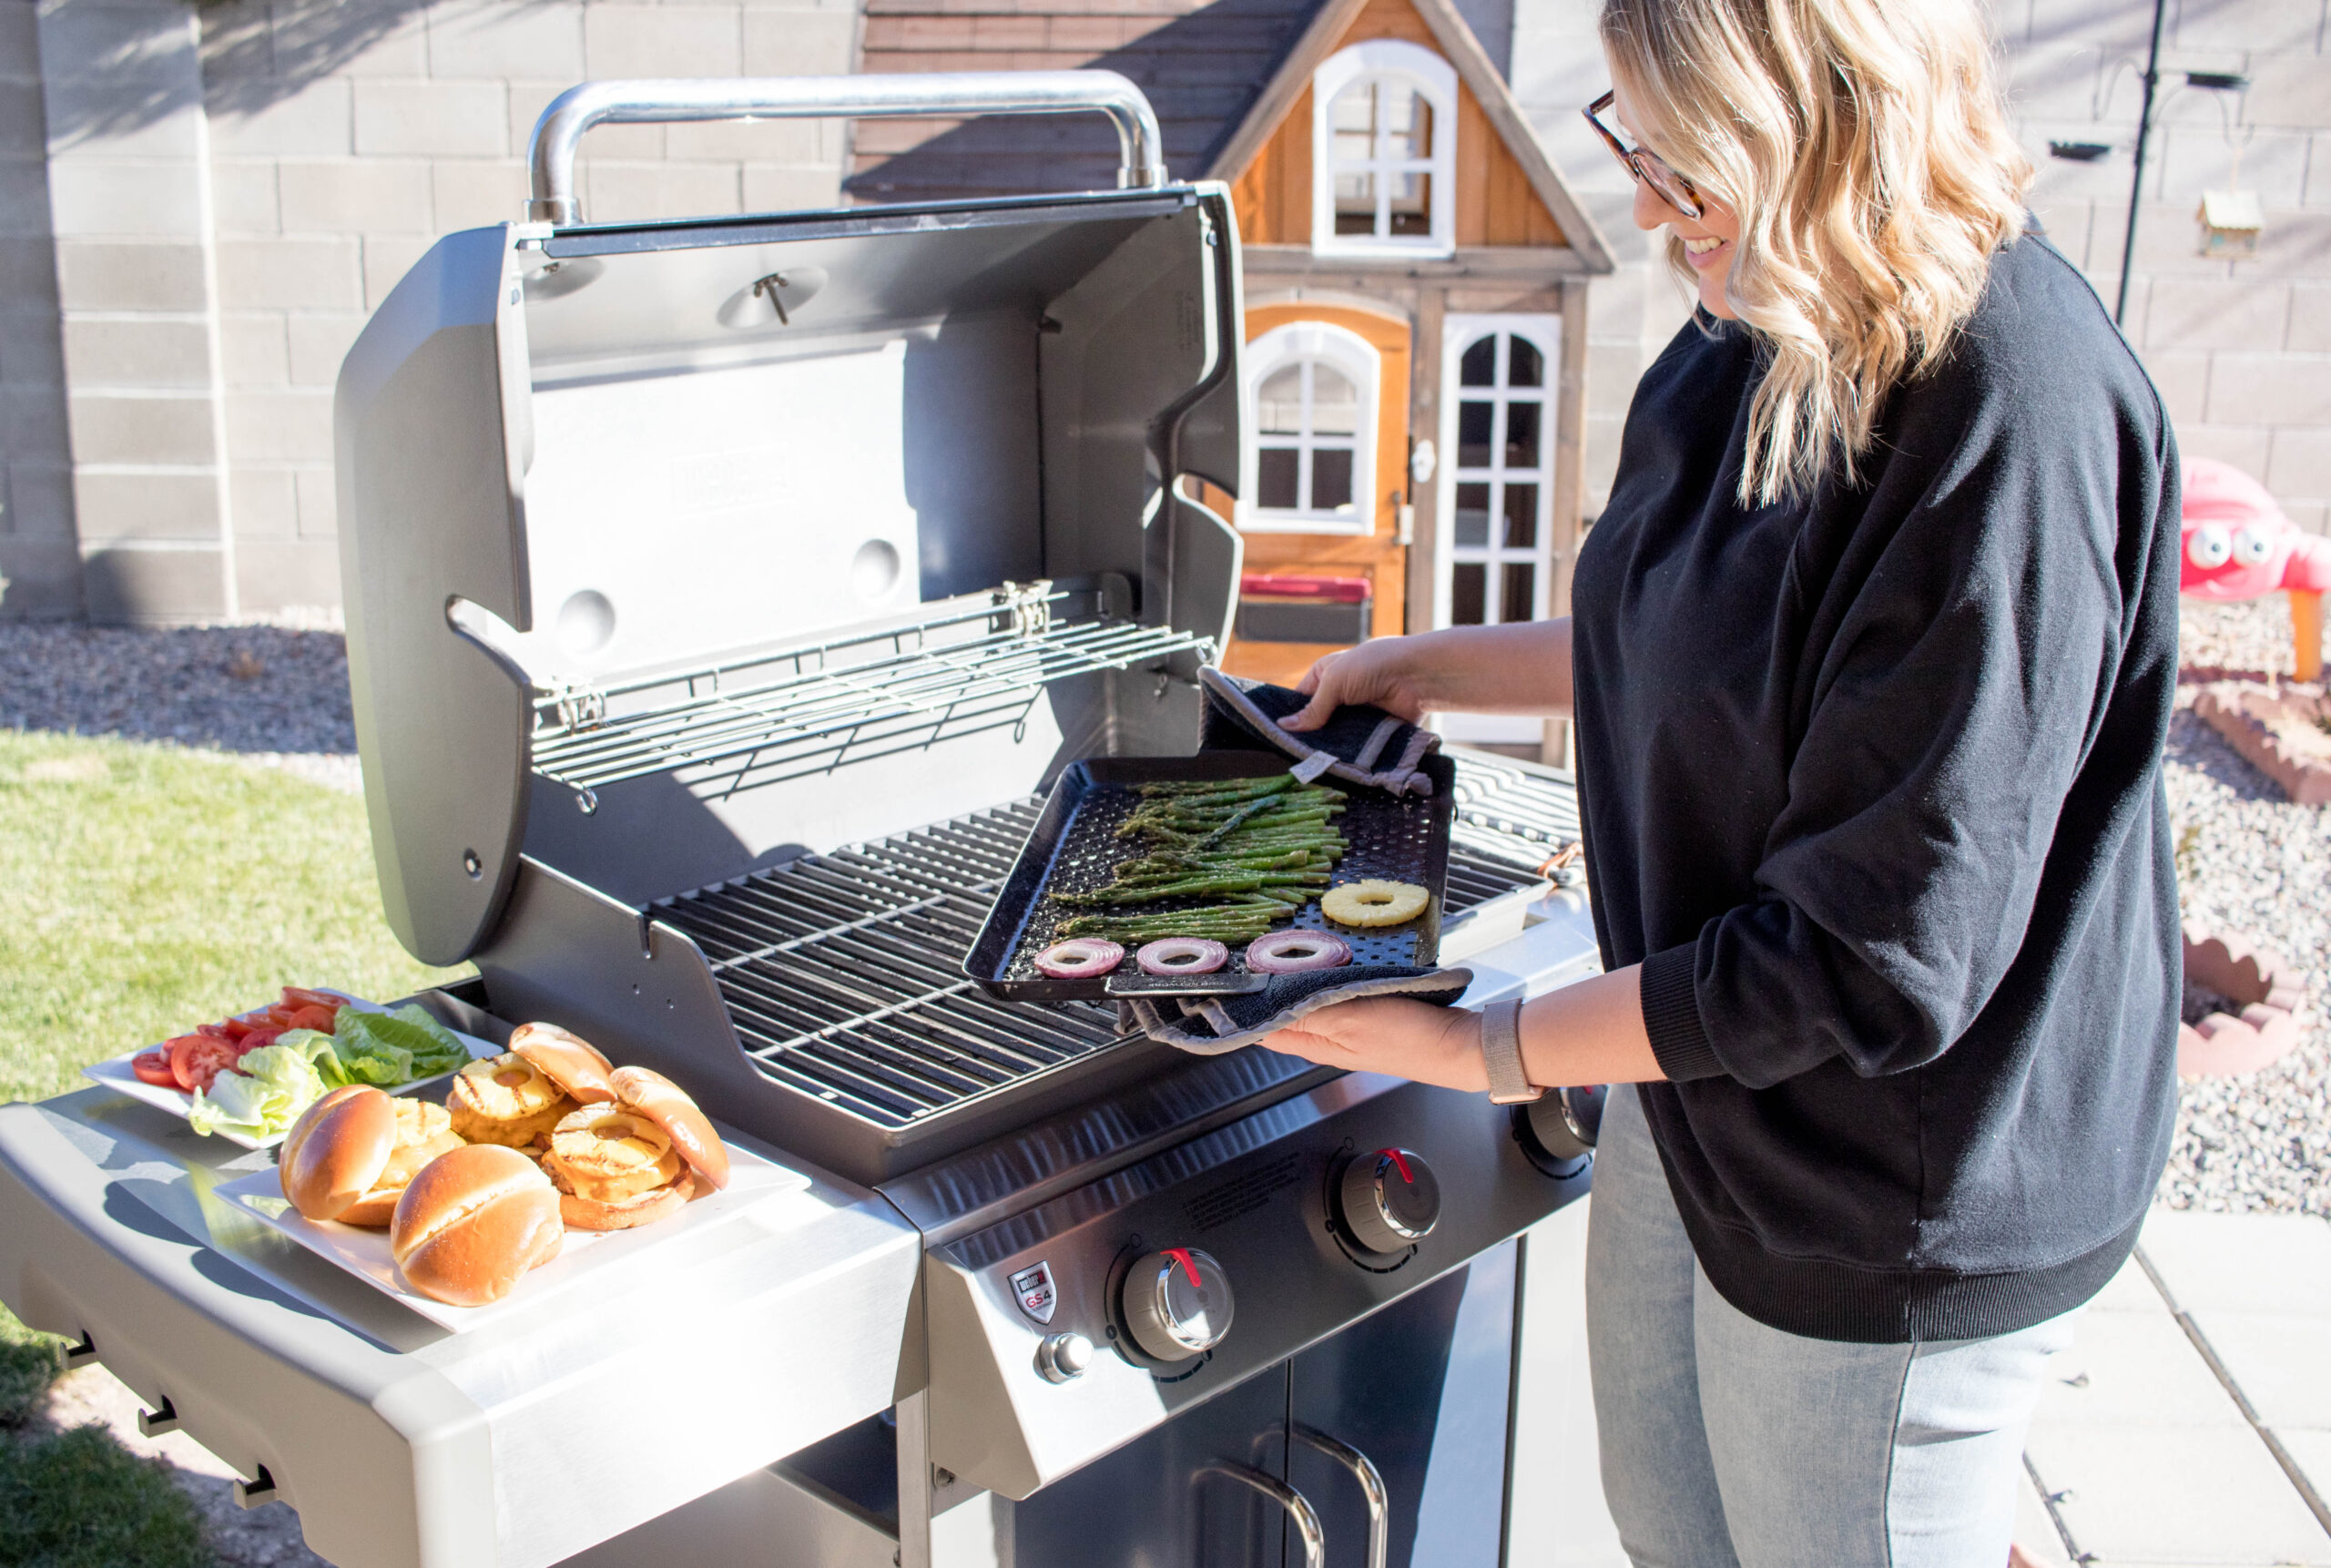 at home tailgating with ace hardware #aceahardware #tailgatingathome #familyfun